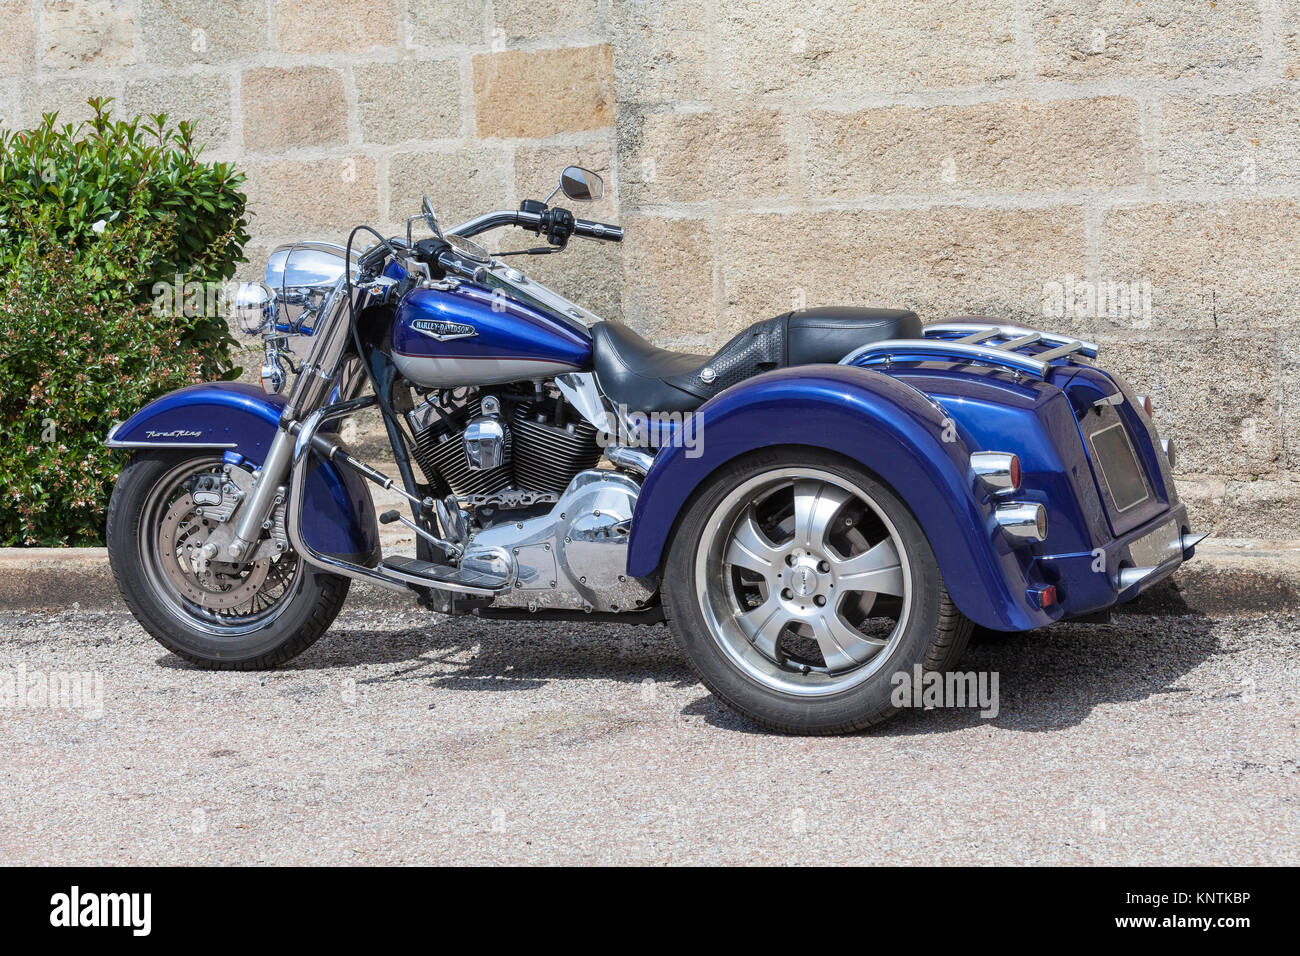 harley davidson trike stock photos harley davidson trike. Black Bedroom Furniture Sets. Home Design Ideas